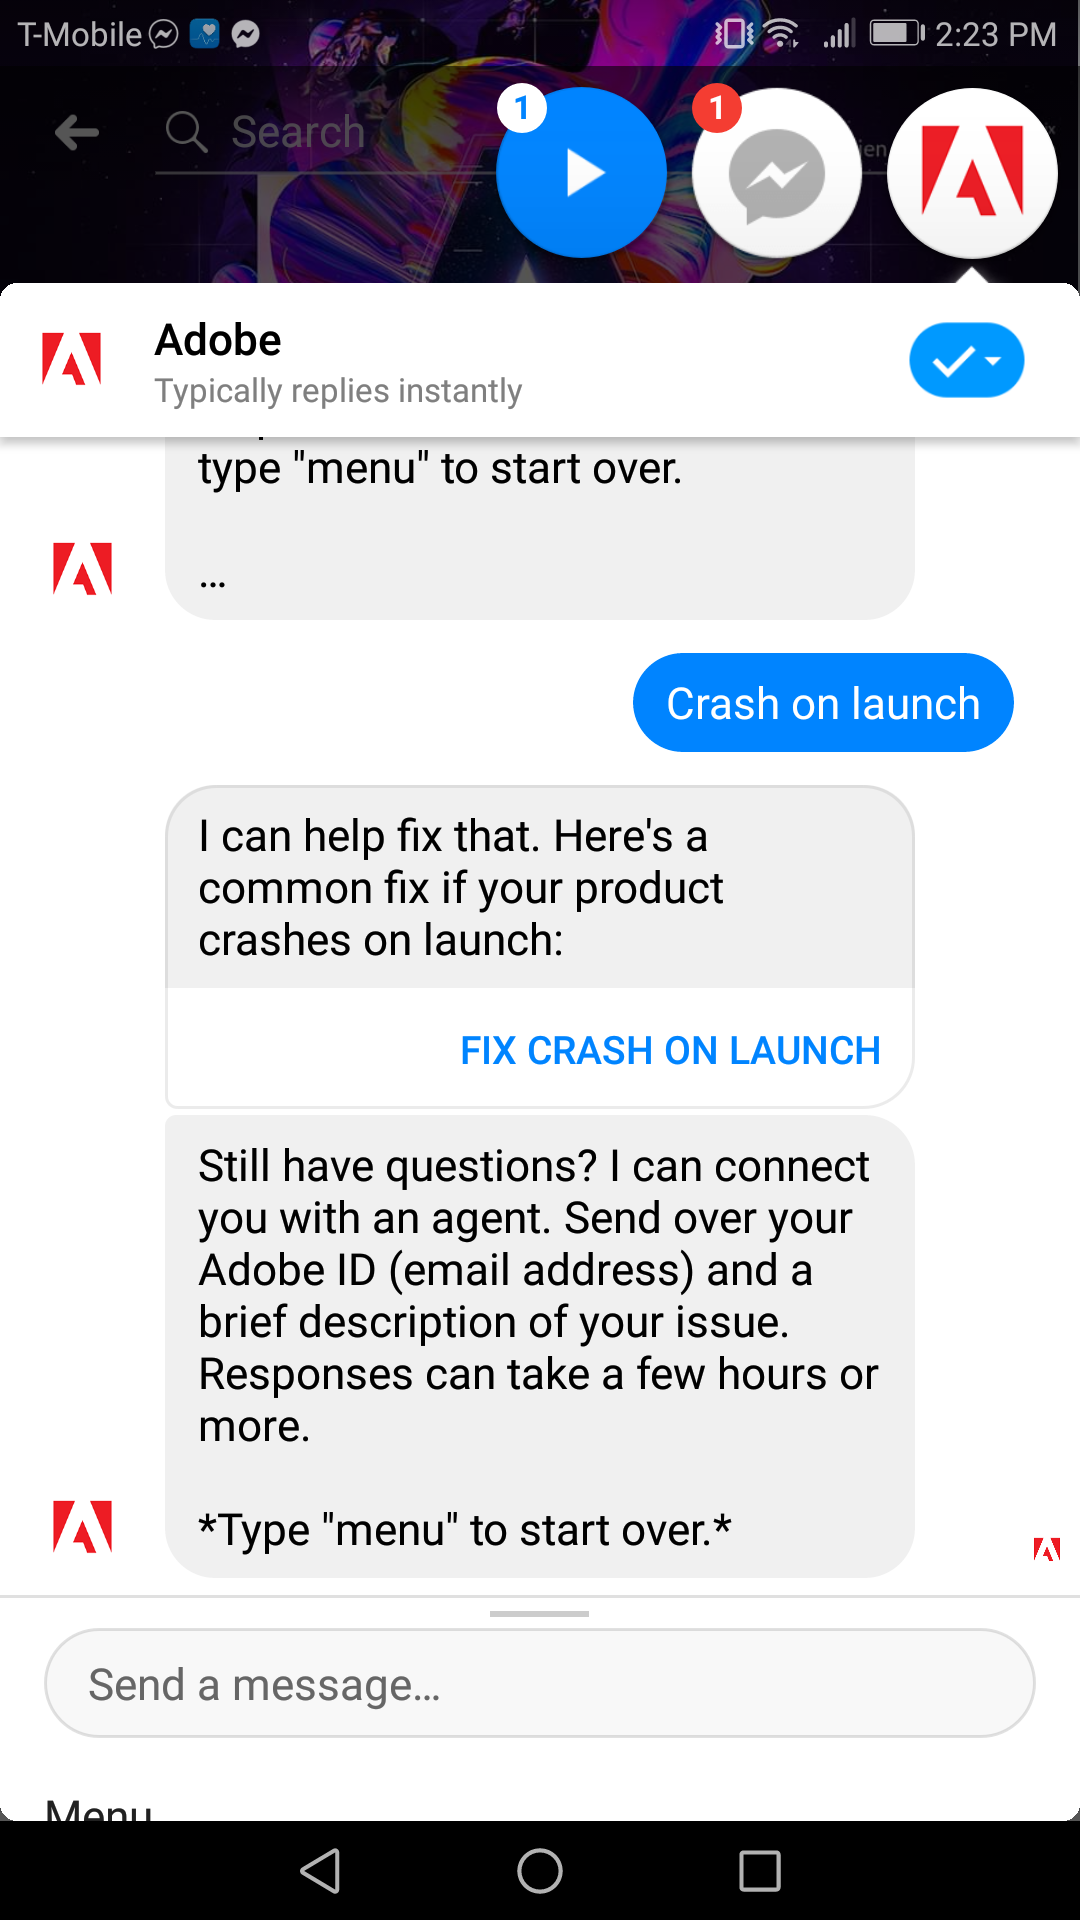 Adobe's bot is helpful for troubleshooting